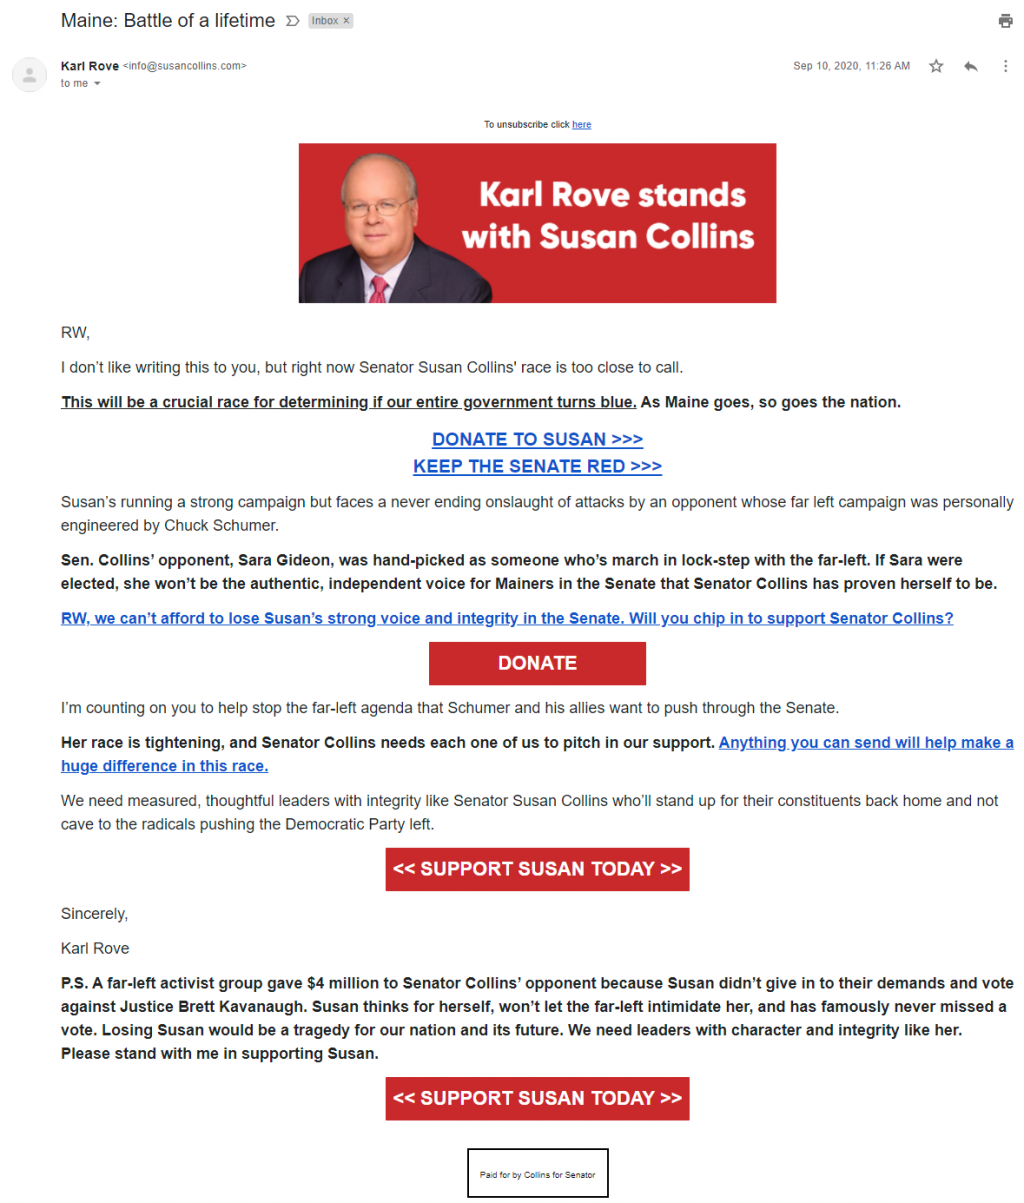 Karl Rove's email for Susan Collins (September 10, 2020)